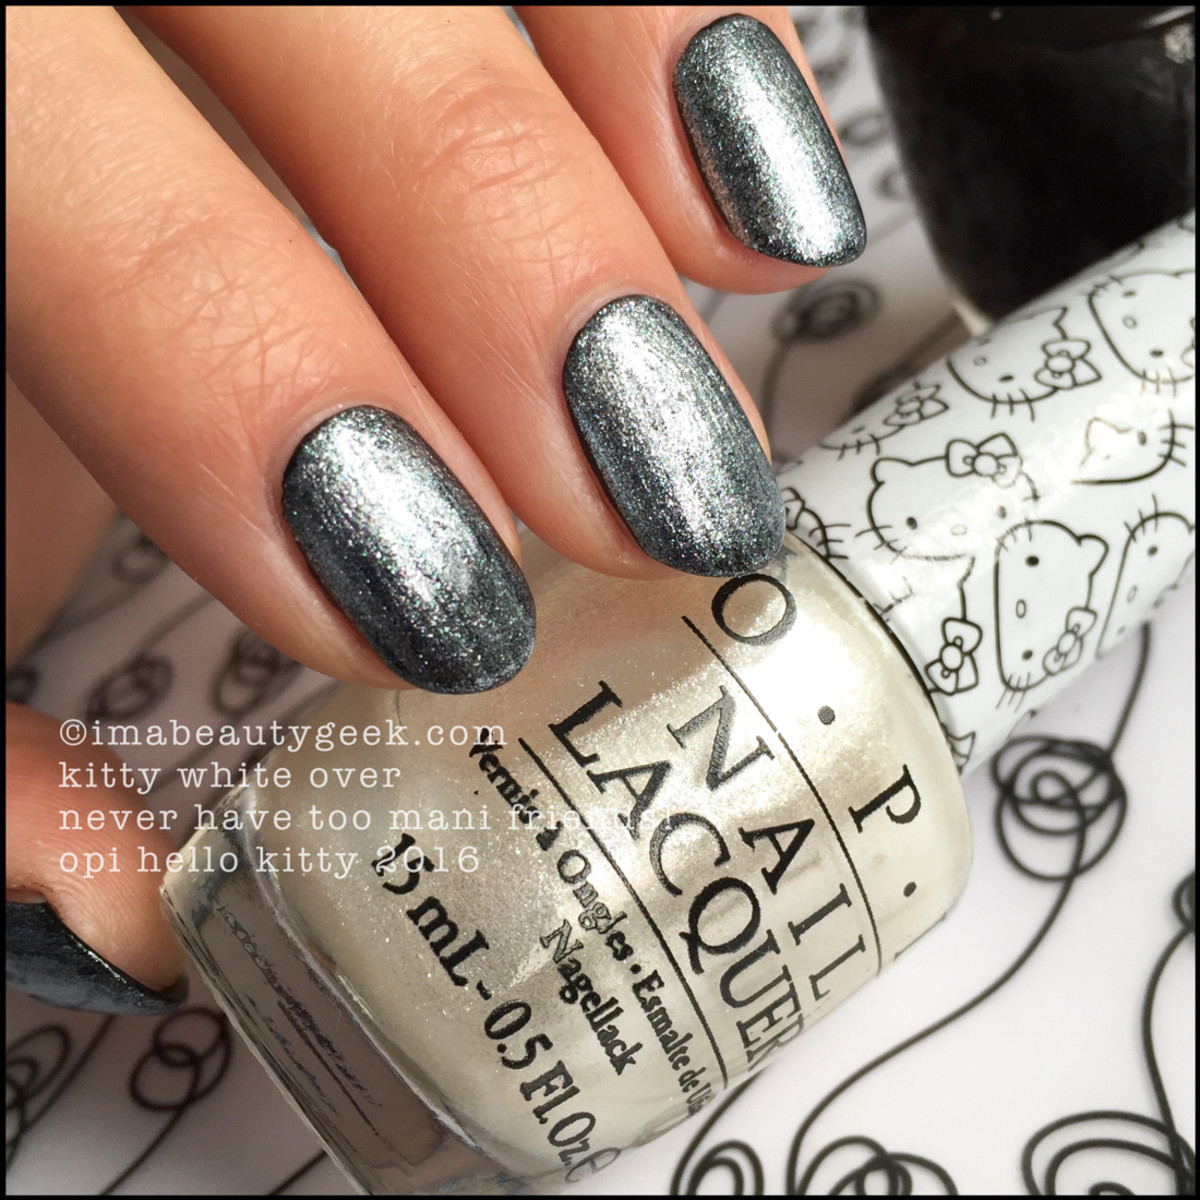 OPI Hello Kitty_OPI Kitty White over OPI Never Have Too Mani Friends